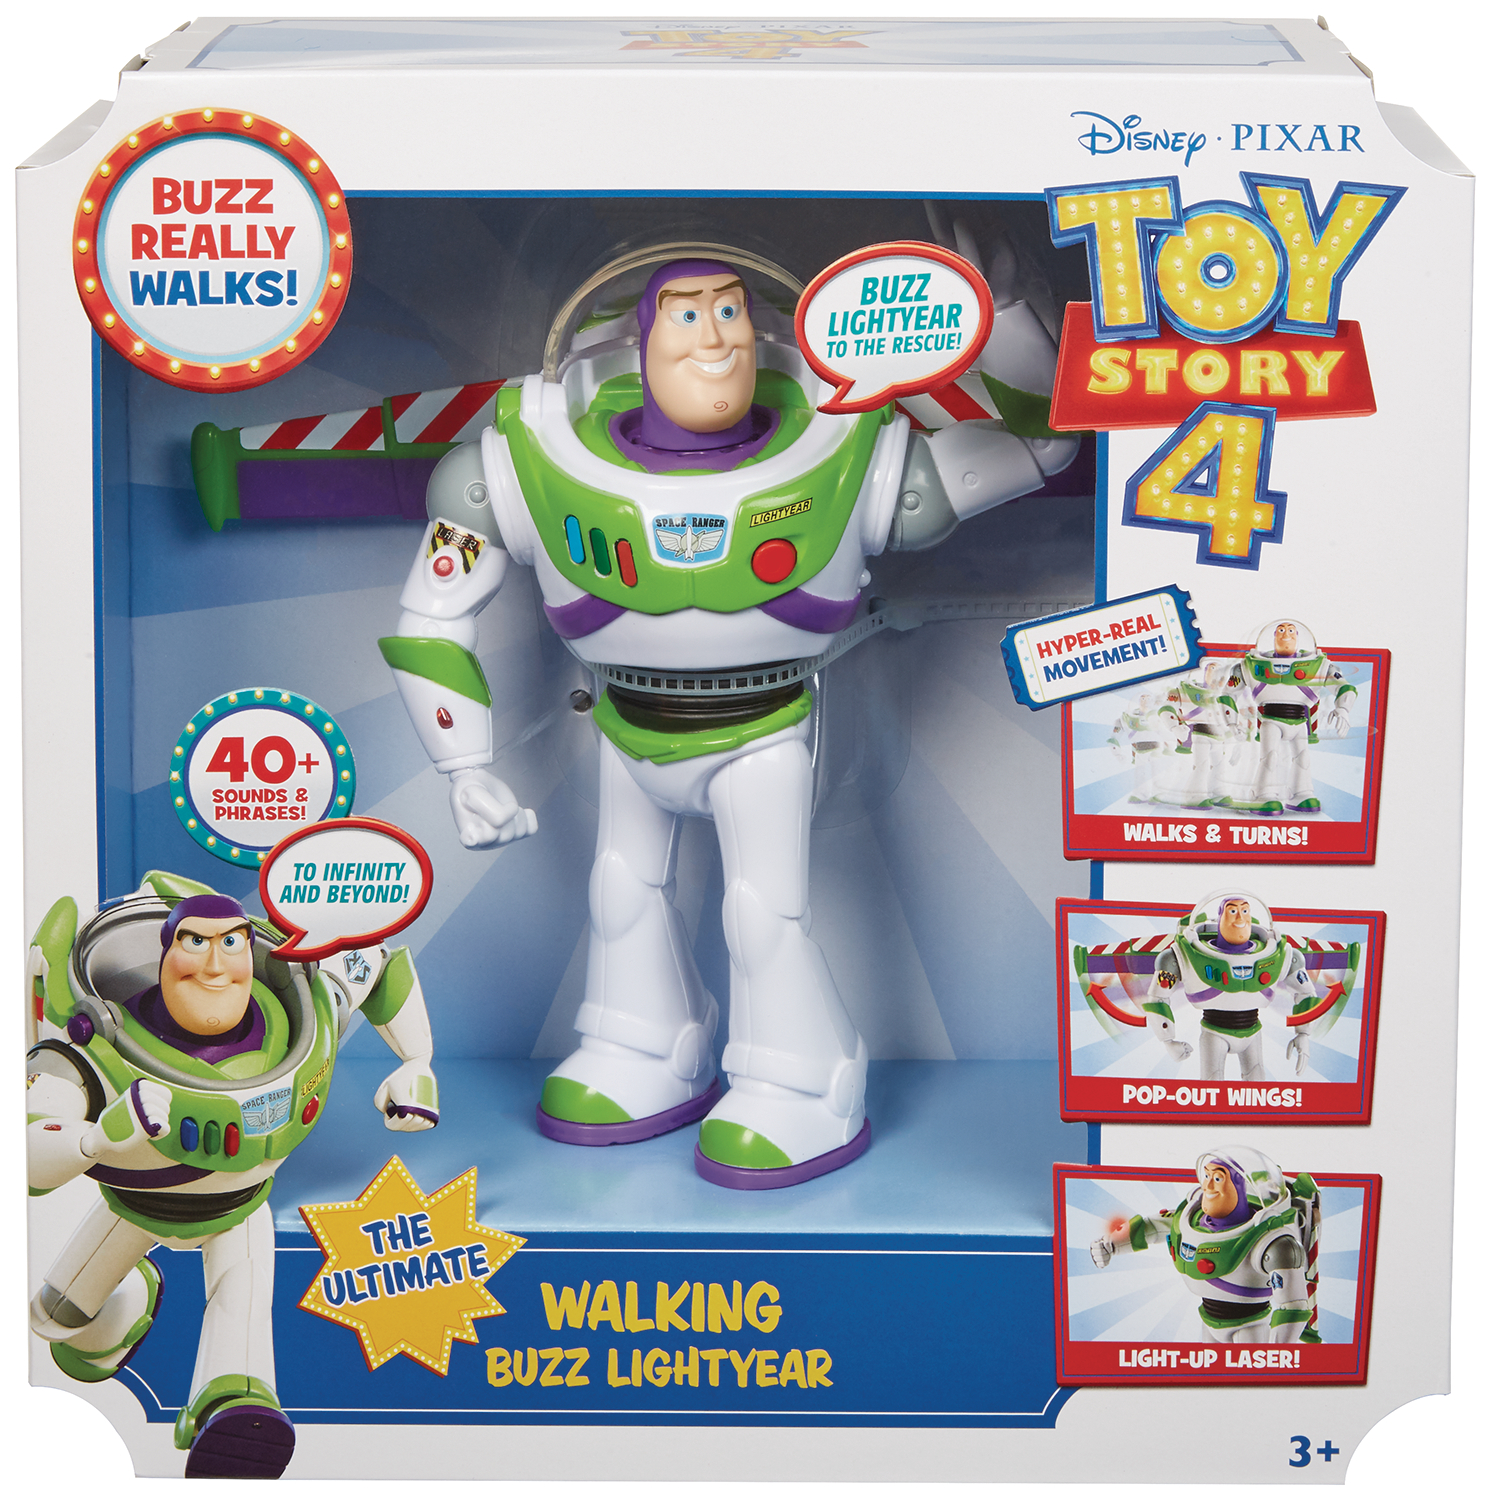 TOY STORY 4 ULTIMATE WALKING BUZZ LIGHTYEAR FIG CS